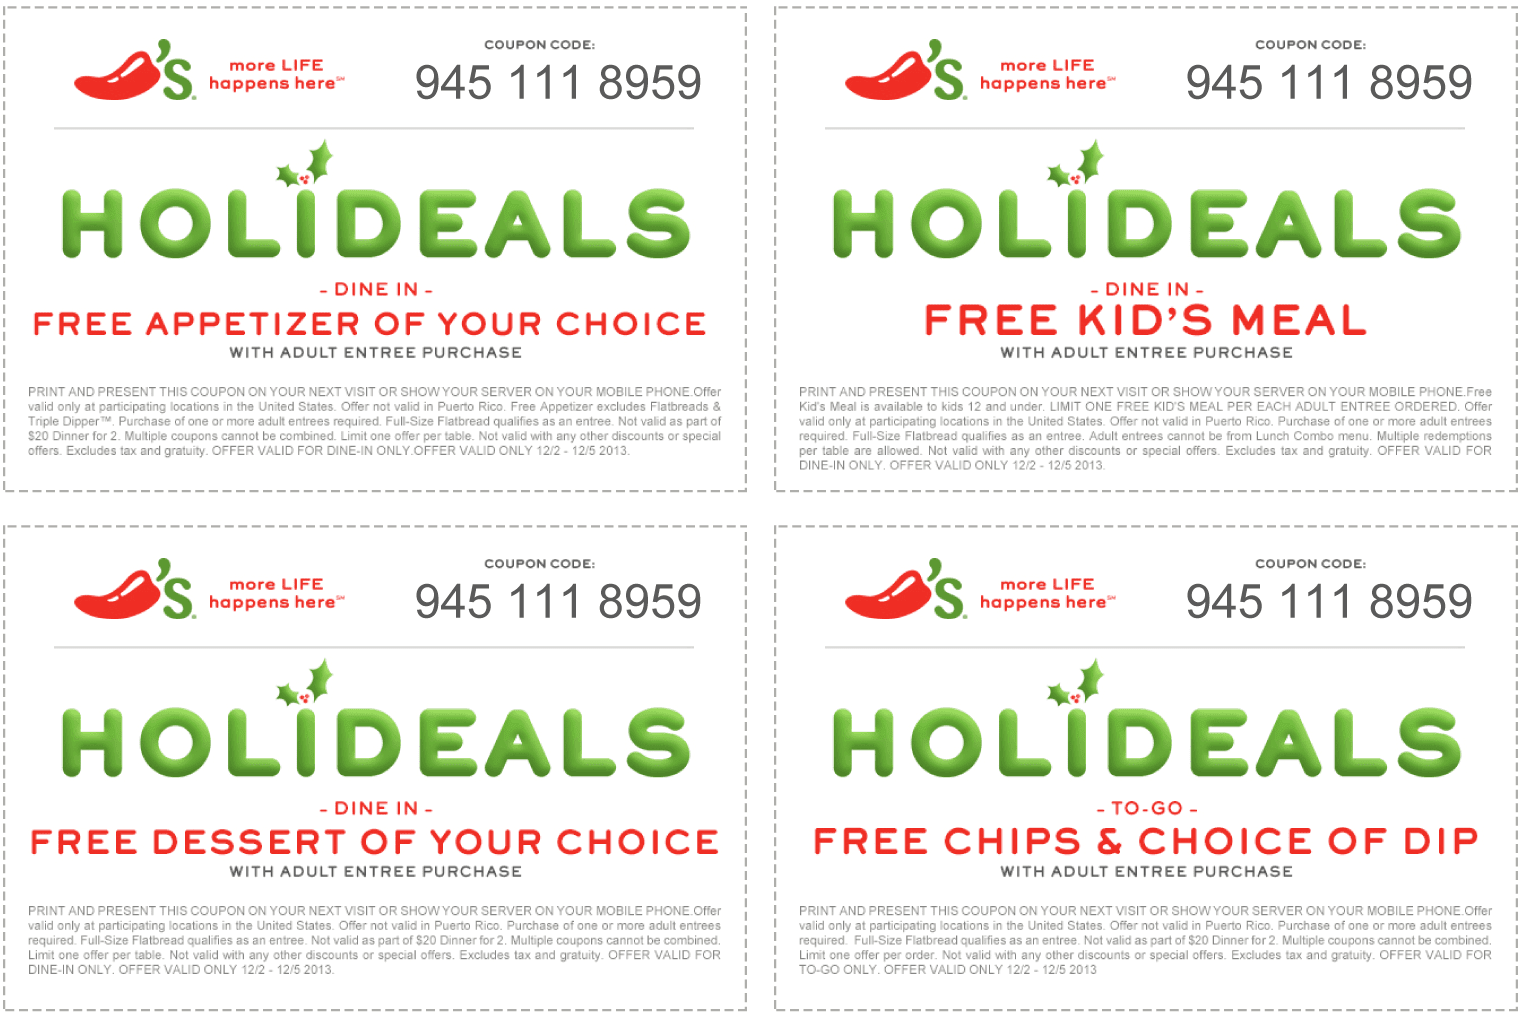 Get Chili's 2 for 20, Chili's 2 for 20 menu at Coupon4all. Save more money with Chili's 2 for Get now!